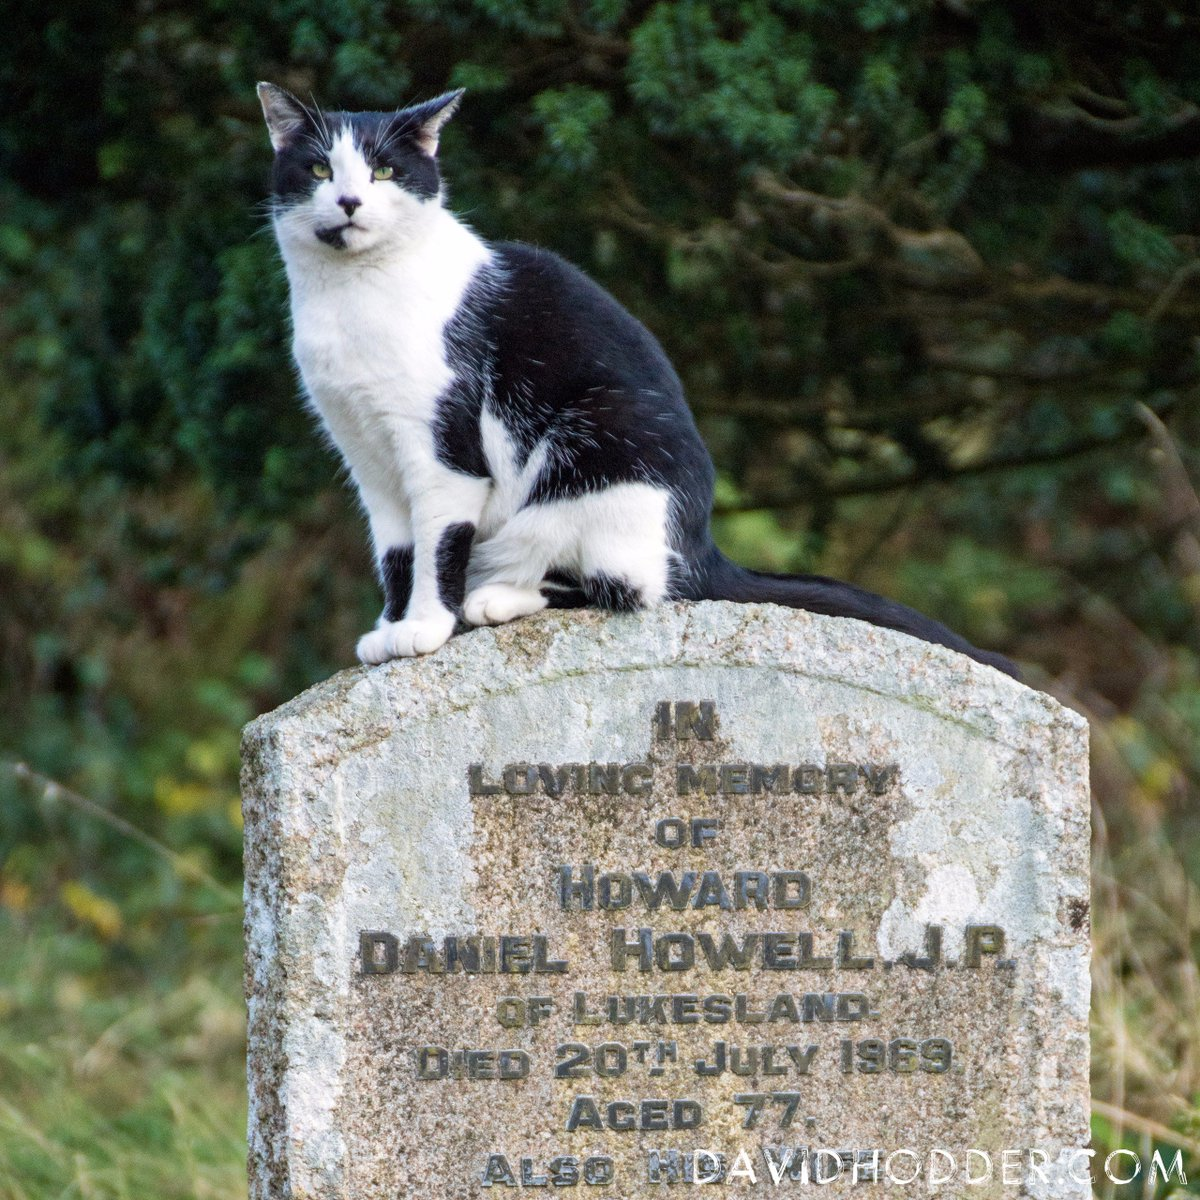 test Twitter Media - Not sure who Howard is but, if he liked cats, then he'd love the fact Felix is sat on his headstone.  #Ivybridge #Devon  #Photography #Cats #Felix #Headstone #CatsOfTwitter https://t.co/C8h9Ldb9Bj